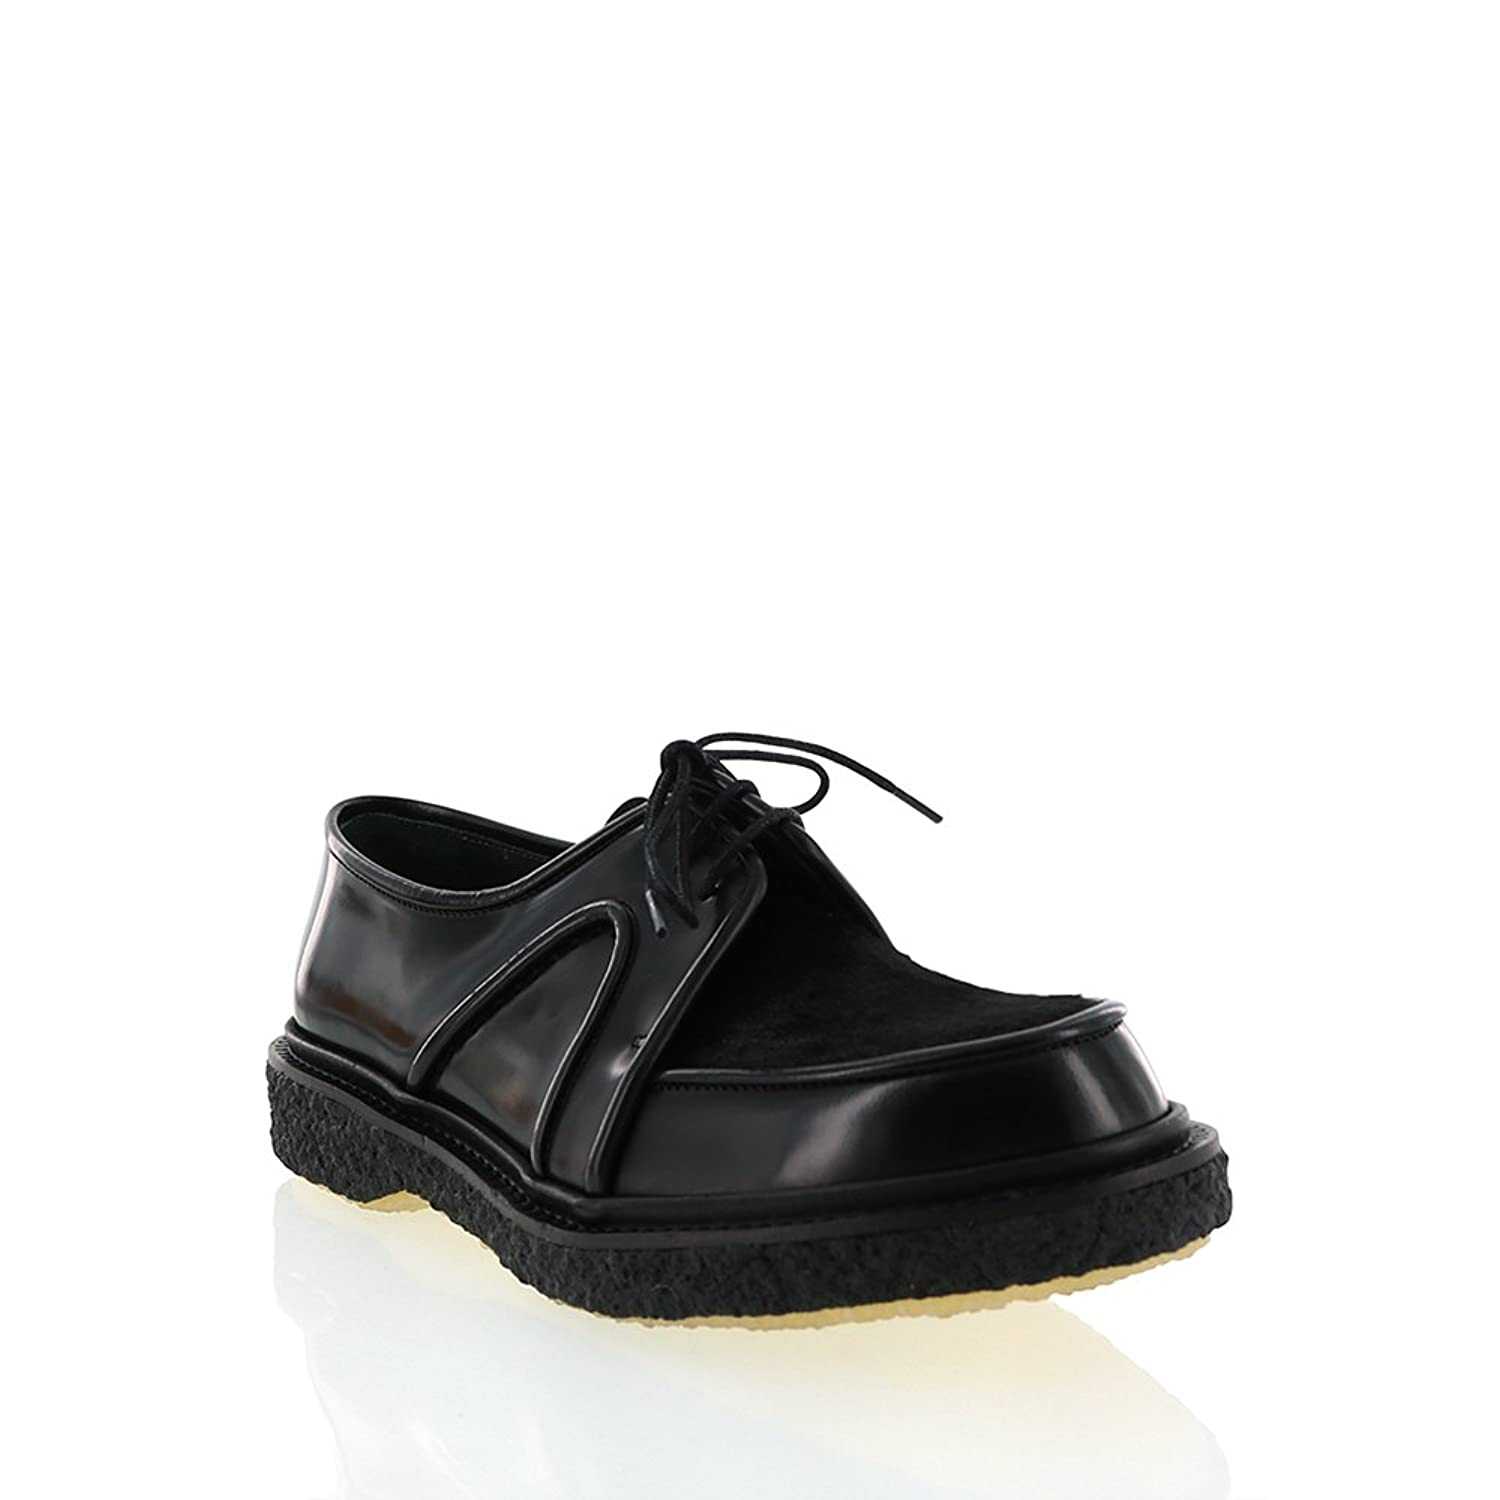 Adieu Black Leather Oxford With Black Pony Hair Plug